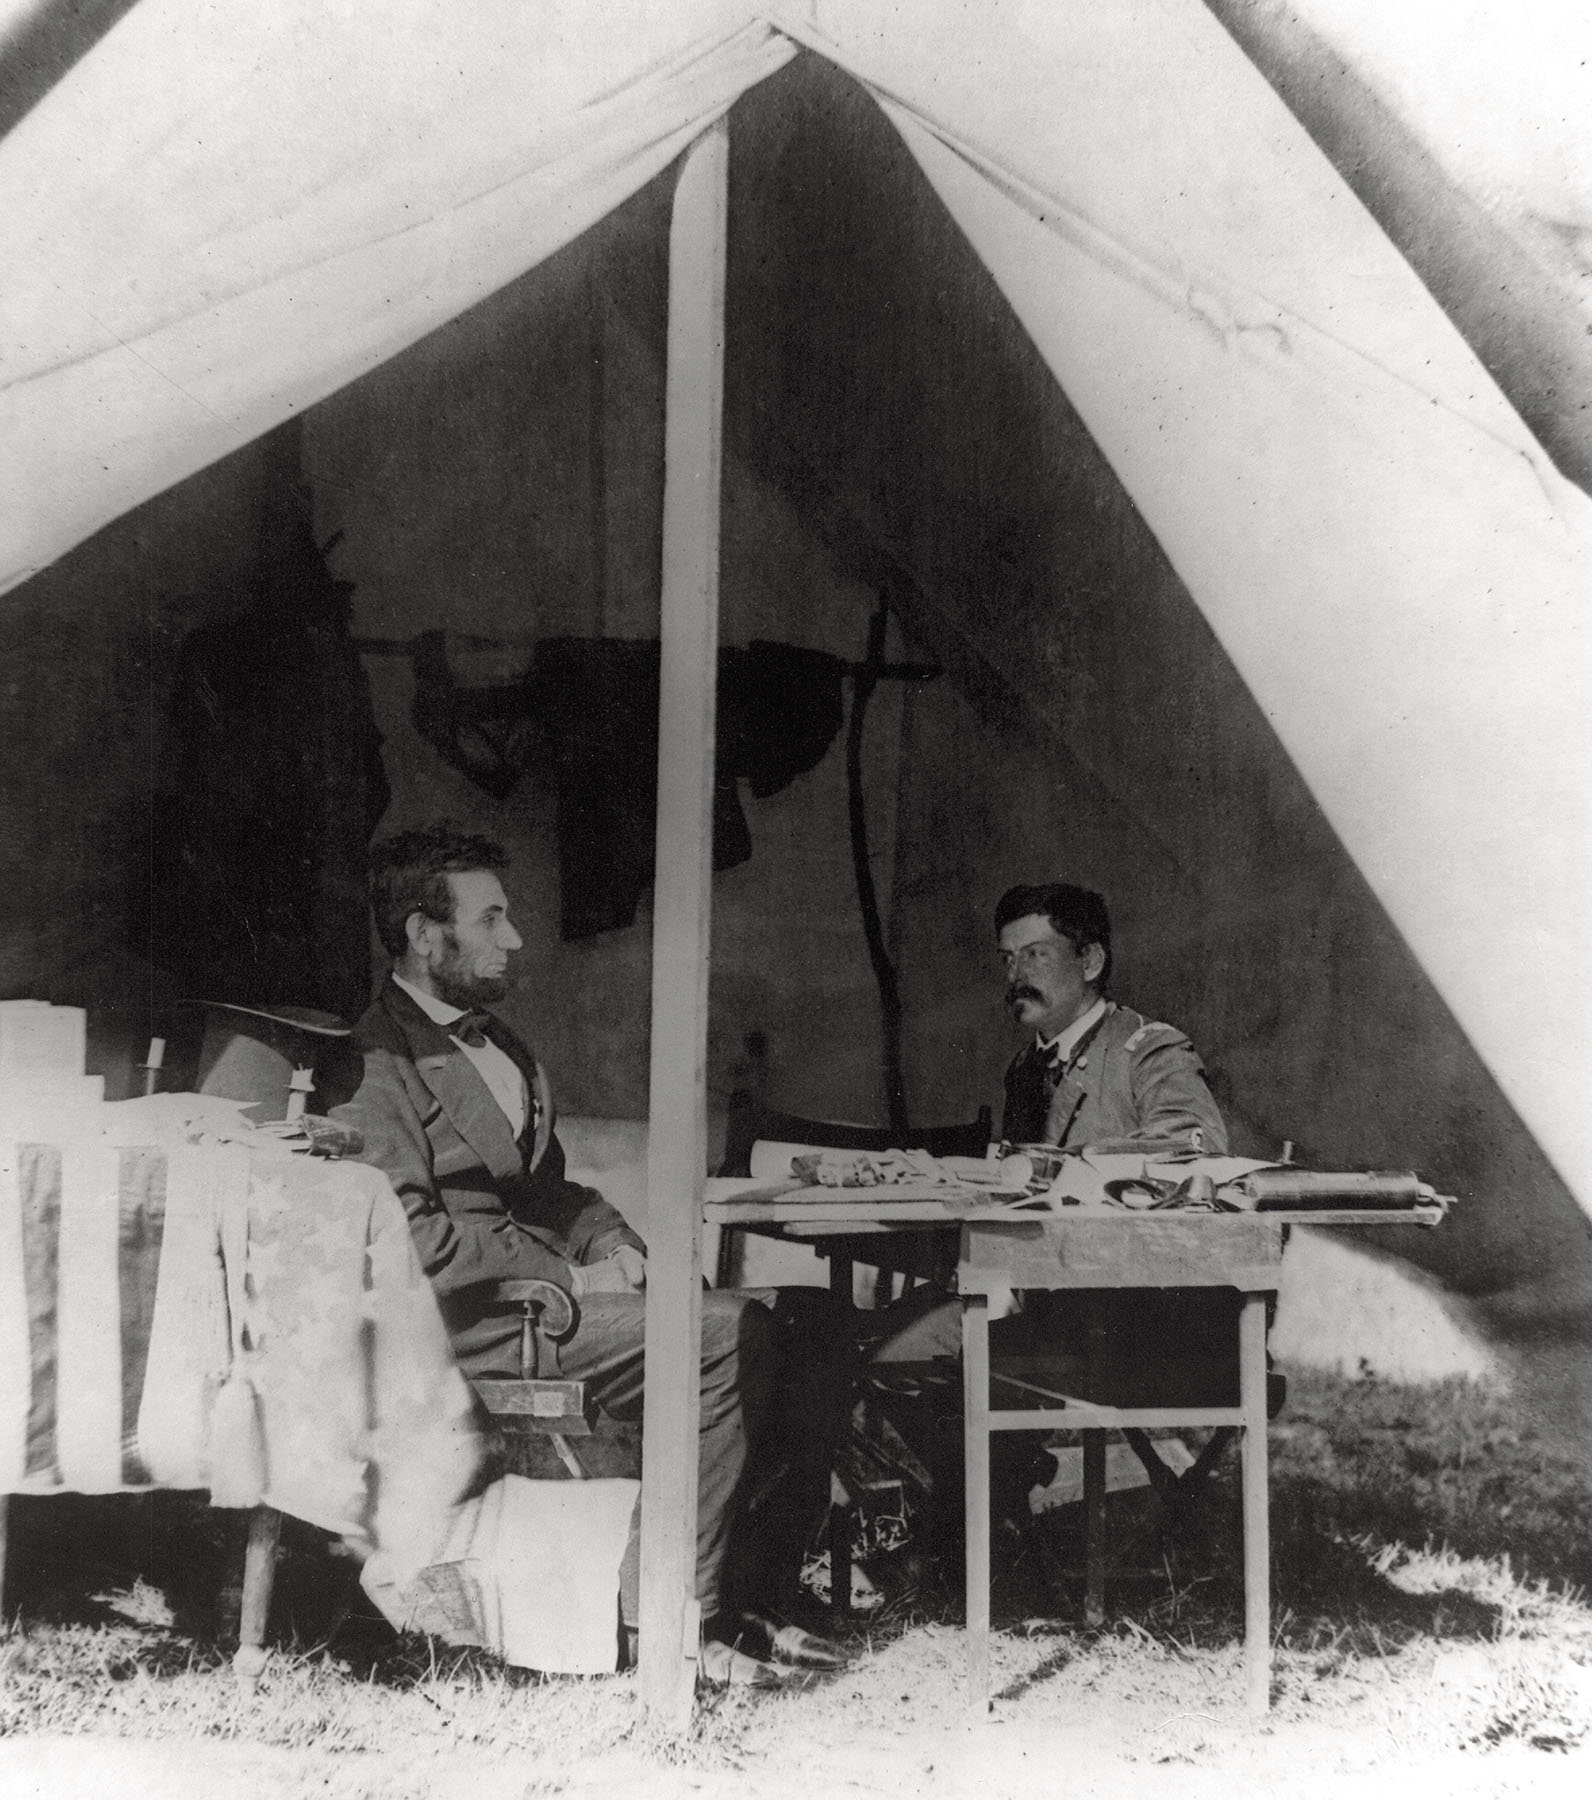 Lincoln and McClellan confer in the generals headquarters tent at Antietam on October 4, 1862. (Photo Courtesy of Library of Congress)